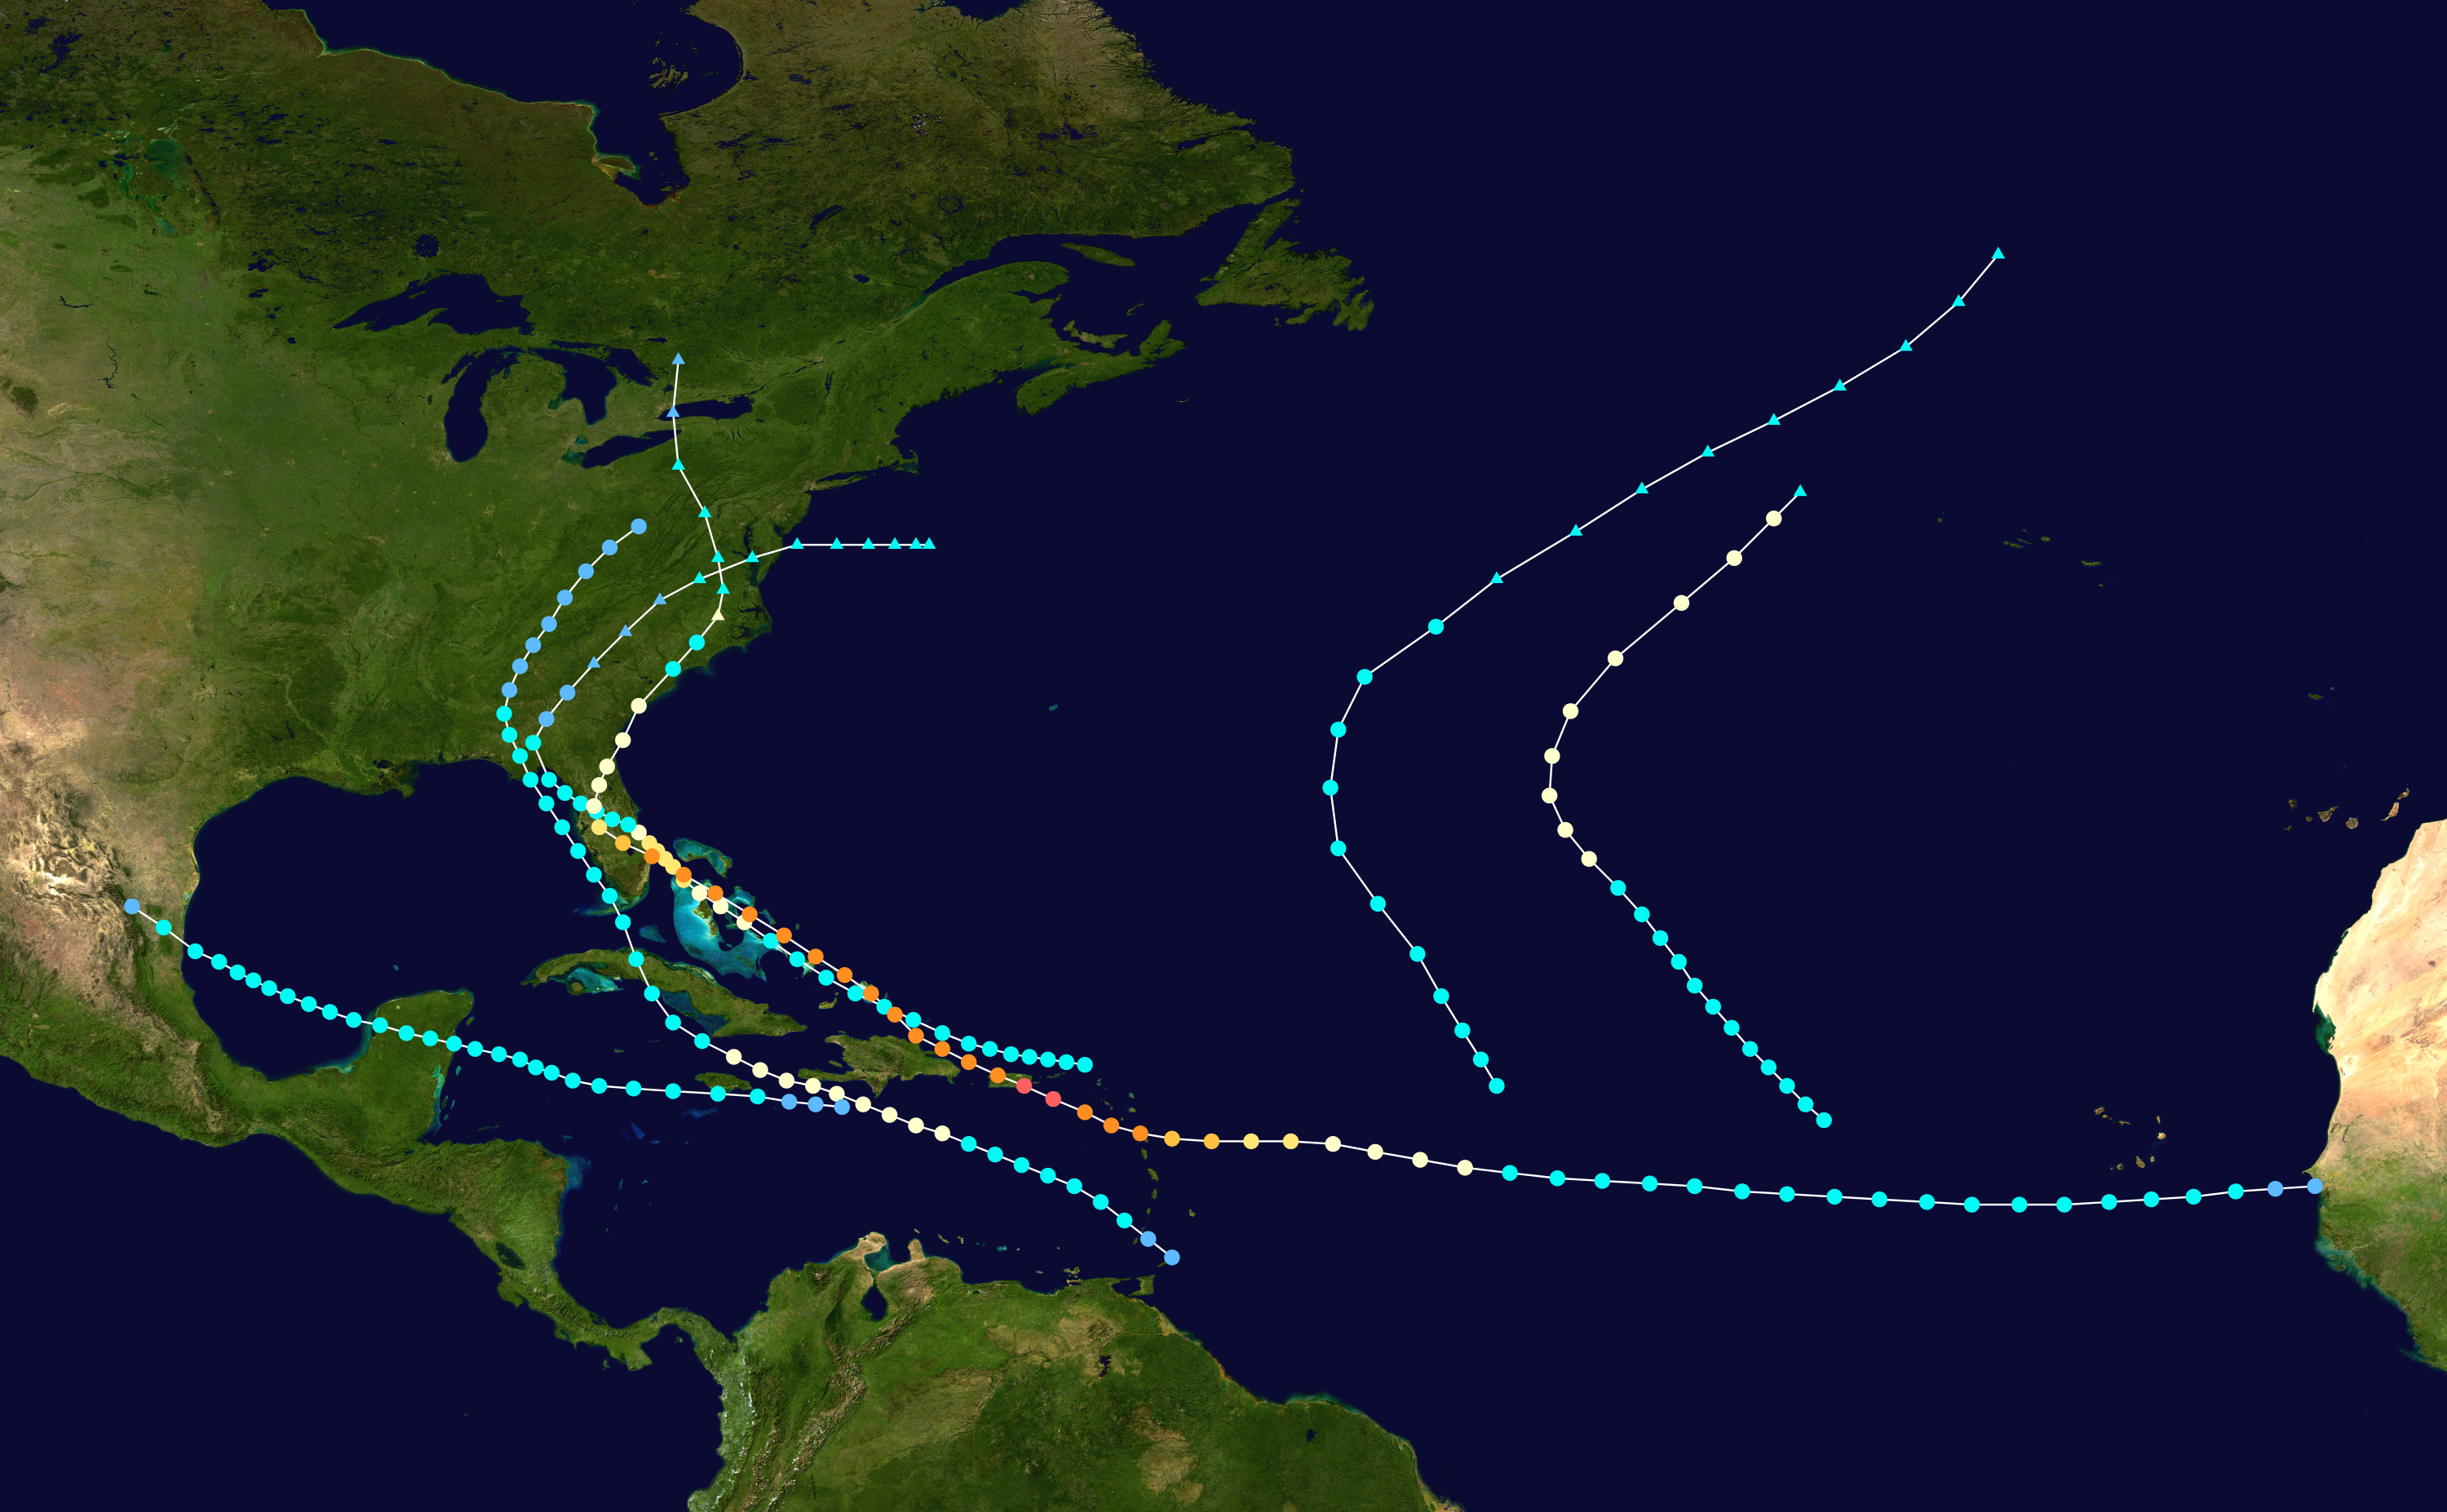 1928 Atlantic hurricane season